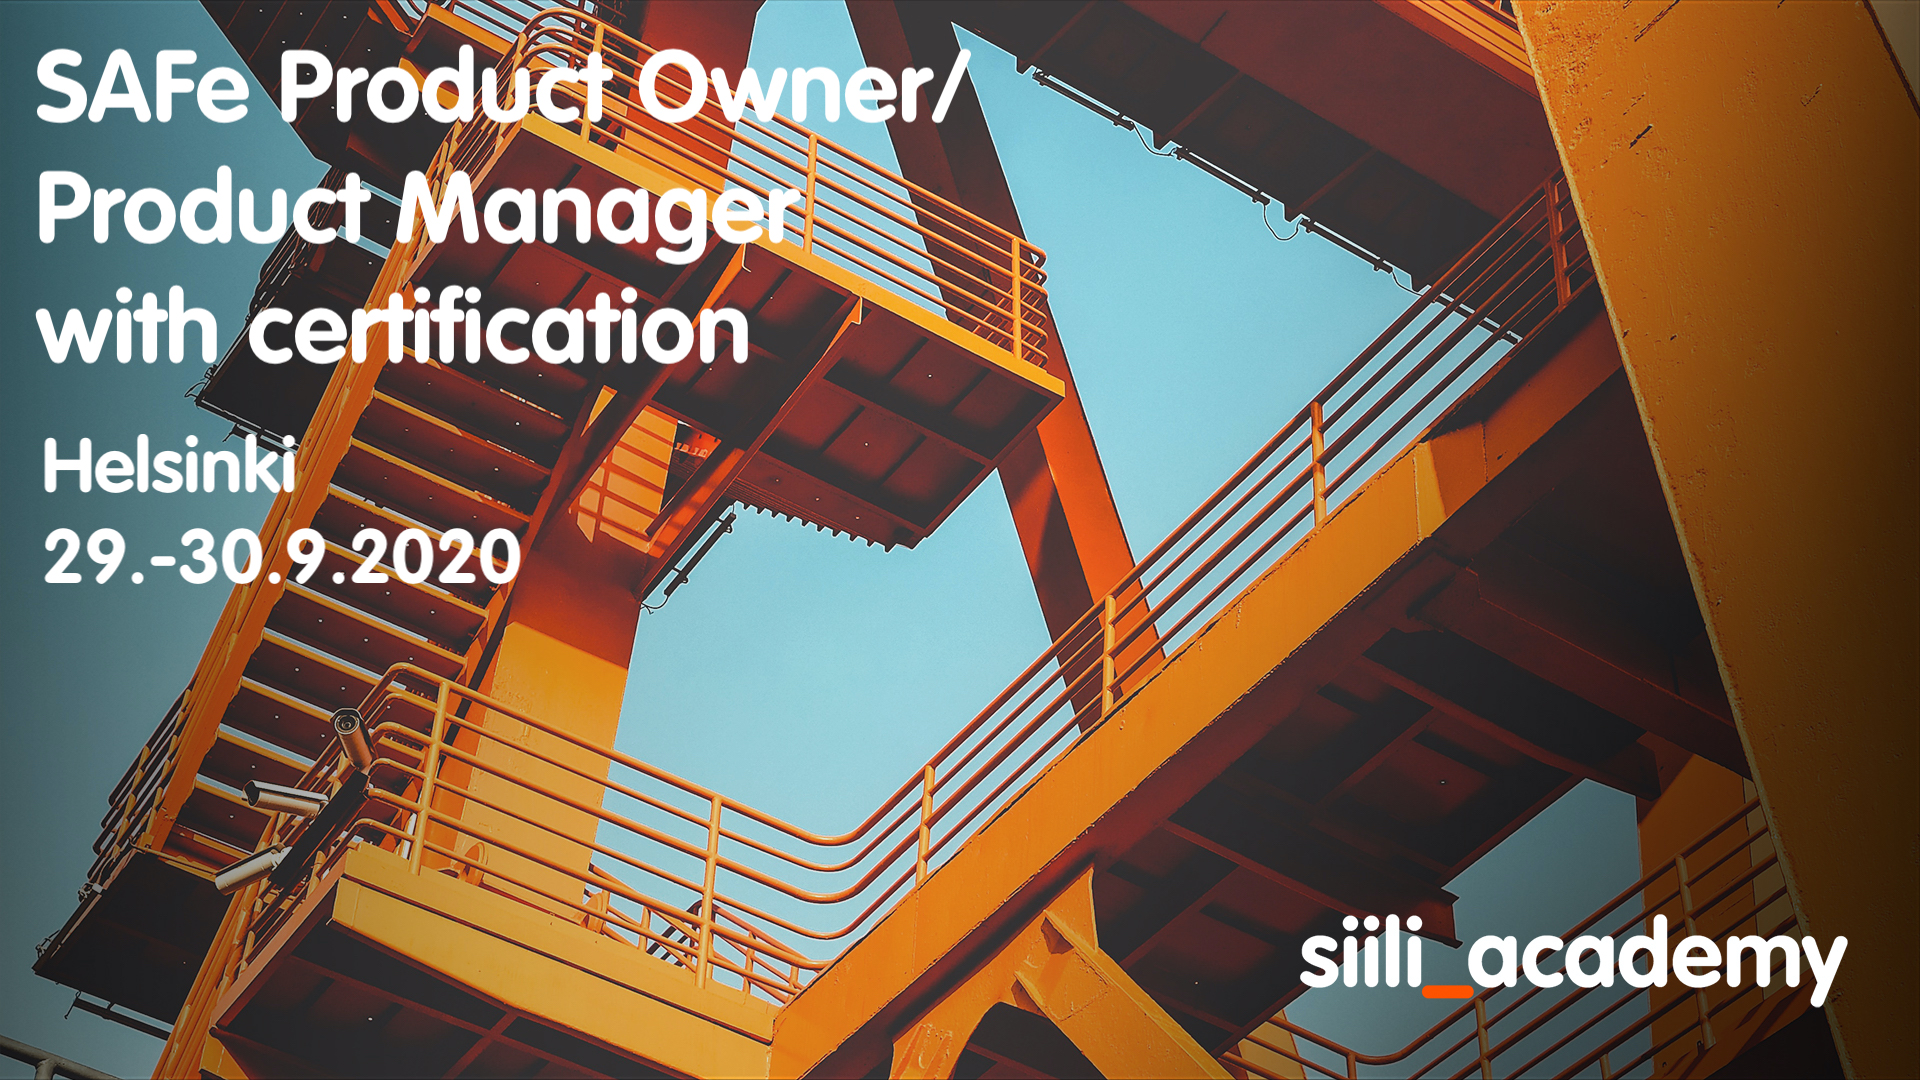 SAFe Product Owner/Product Manager with certification | Helsinki 29.-30.9.2020